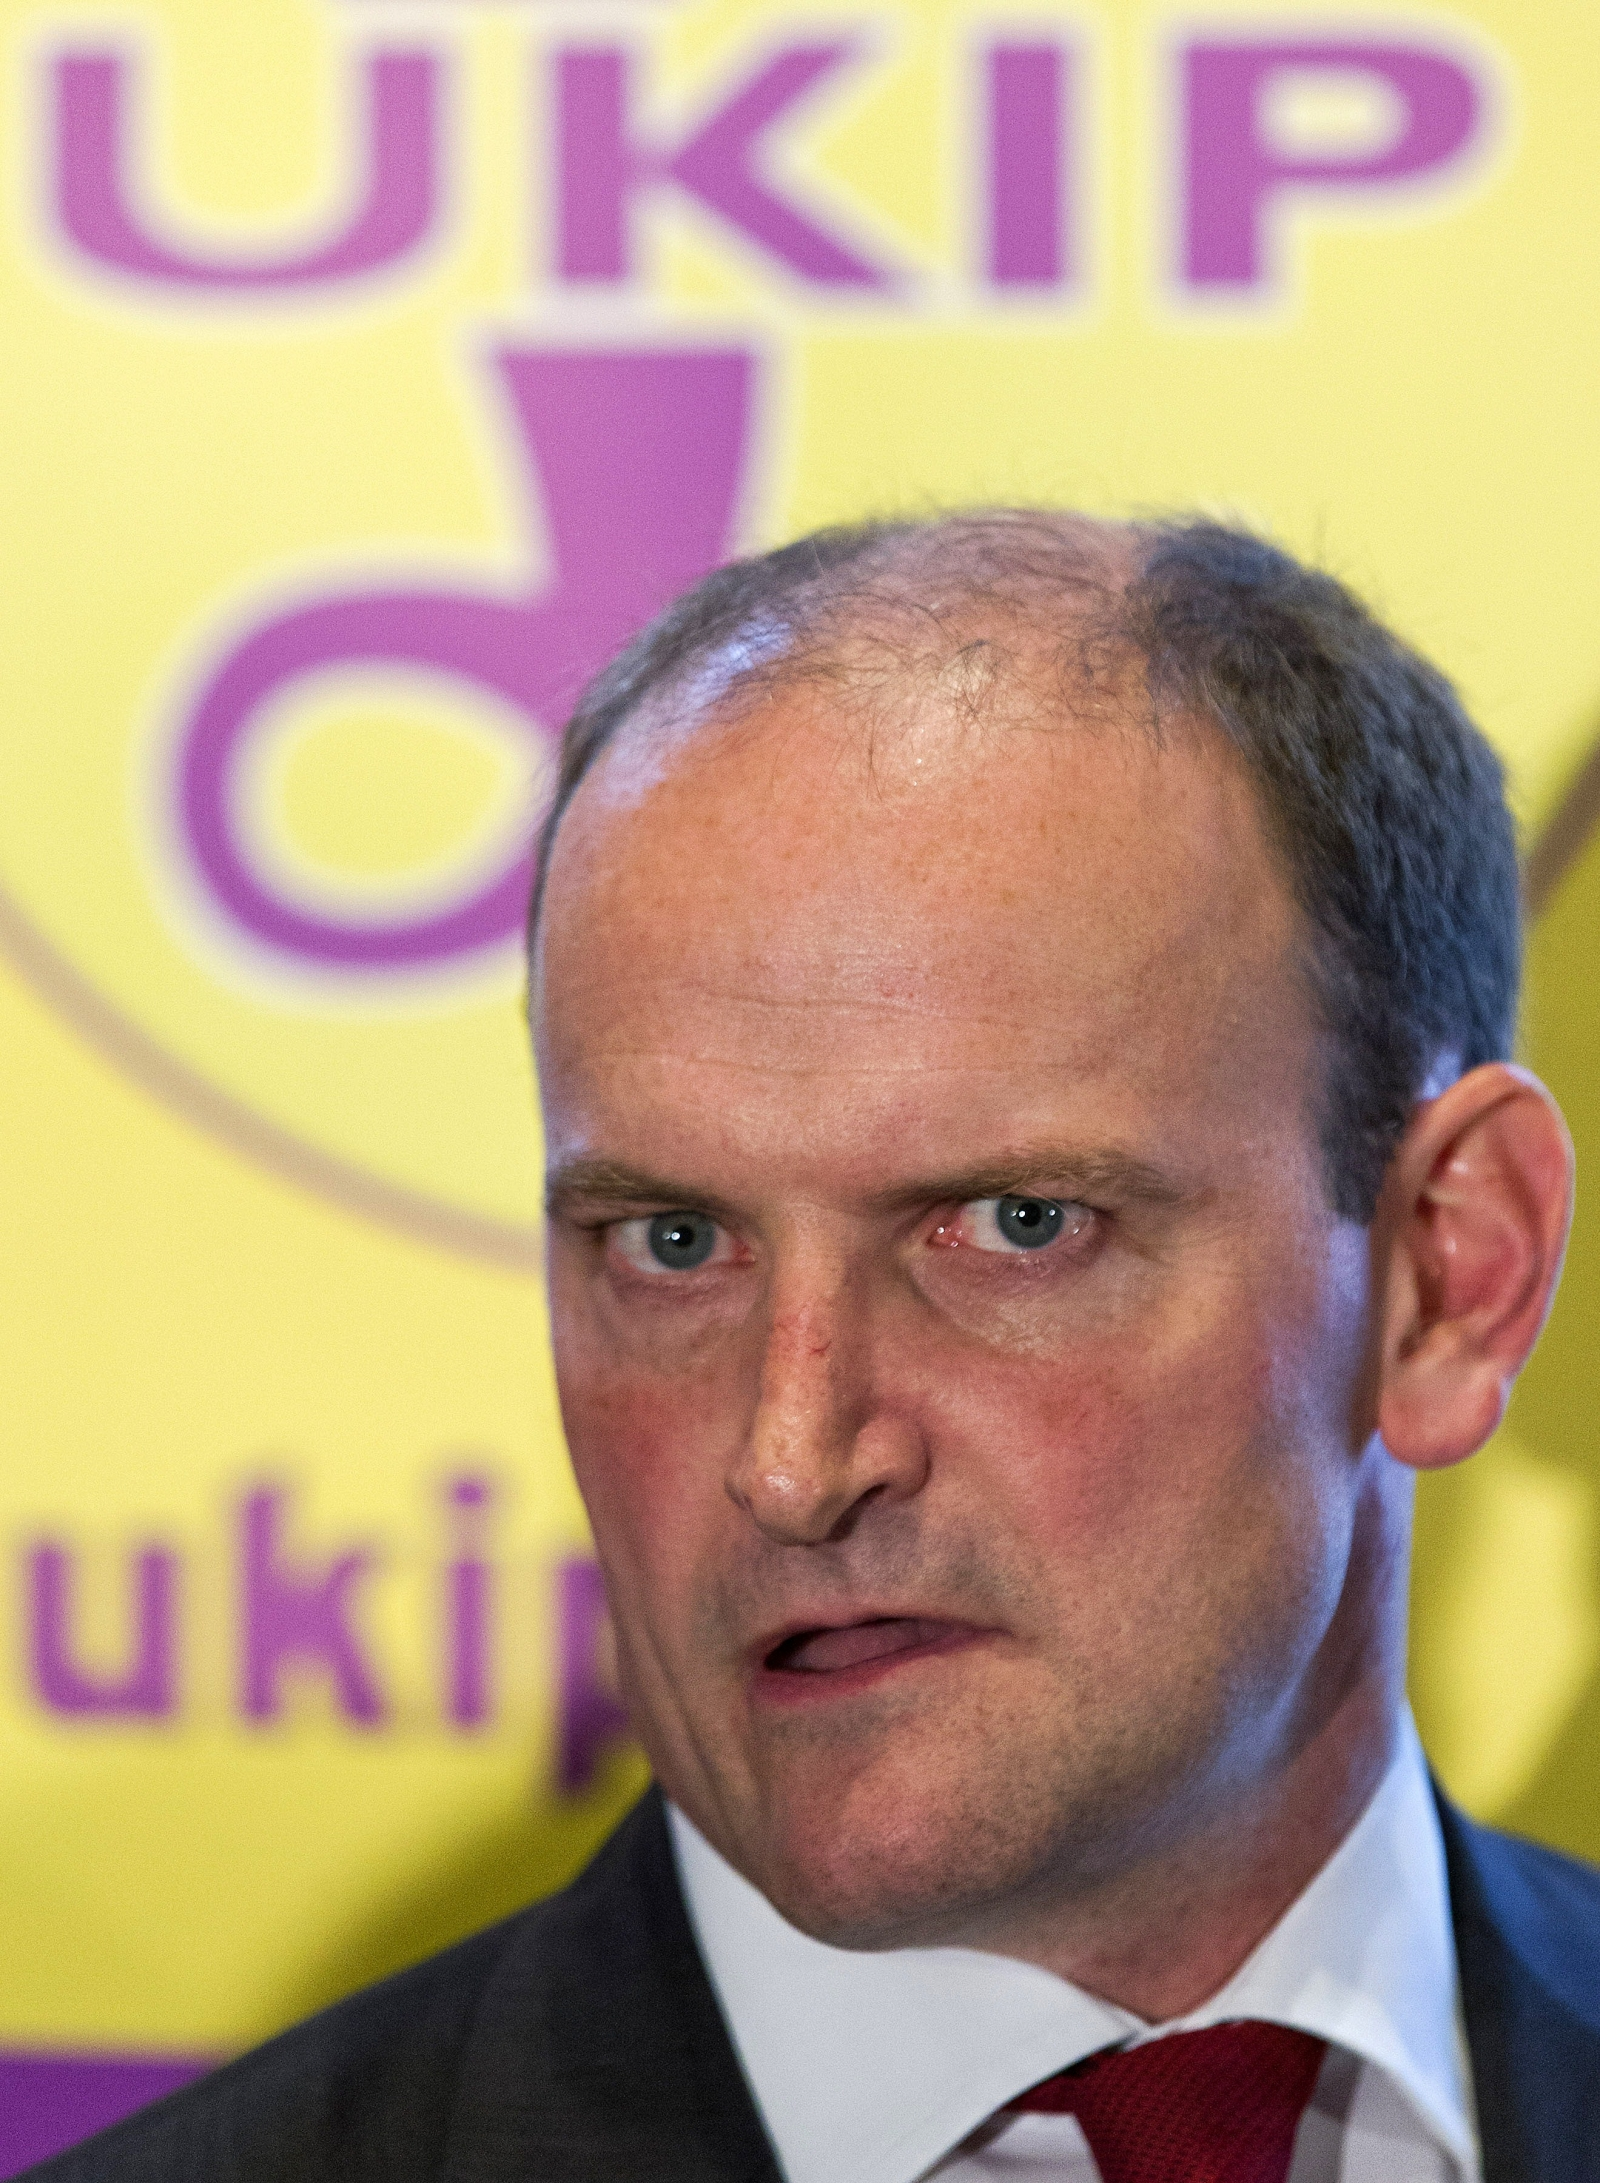 Douglas Carswell, whose defection to Ukip could hand the anti-immigration party their first parliamentary seat. (Getty)